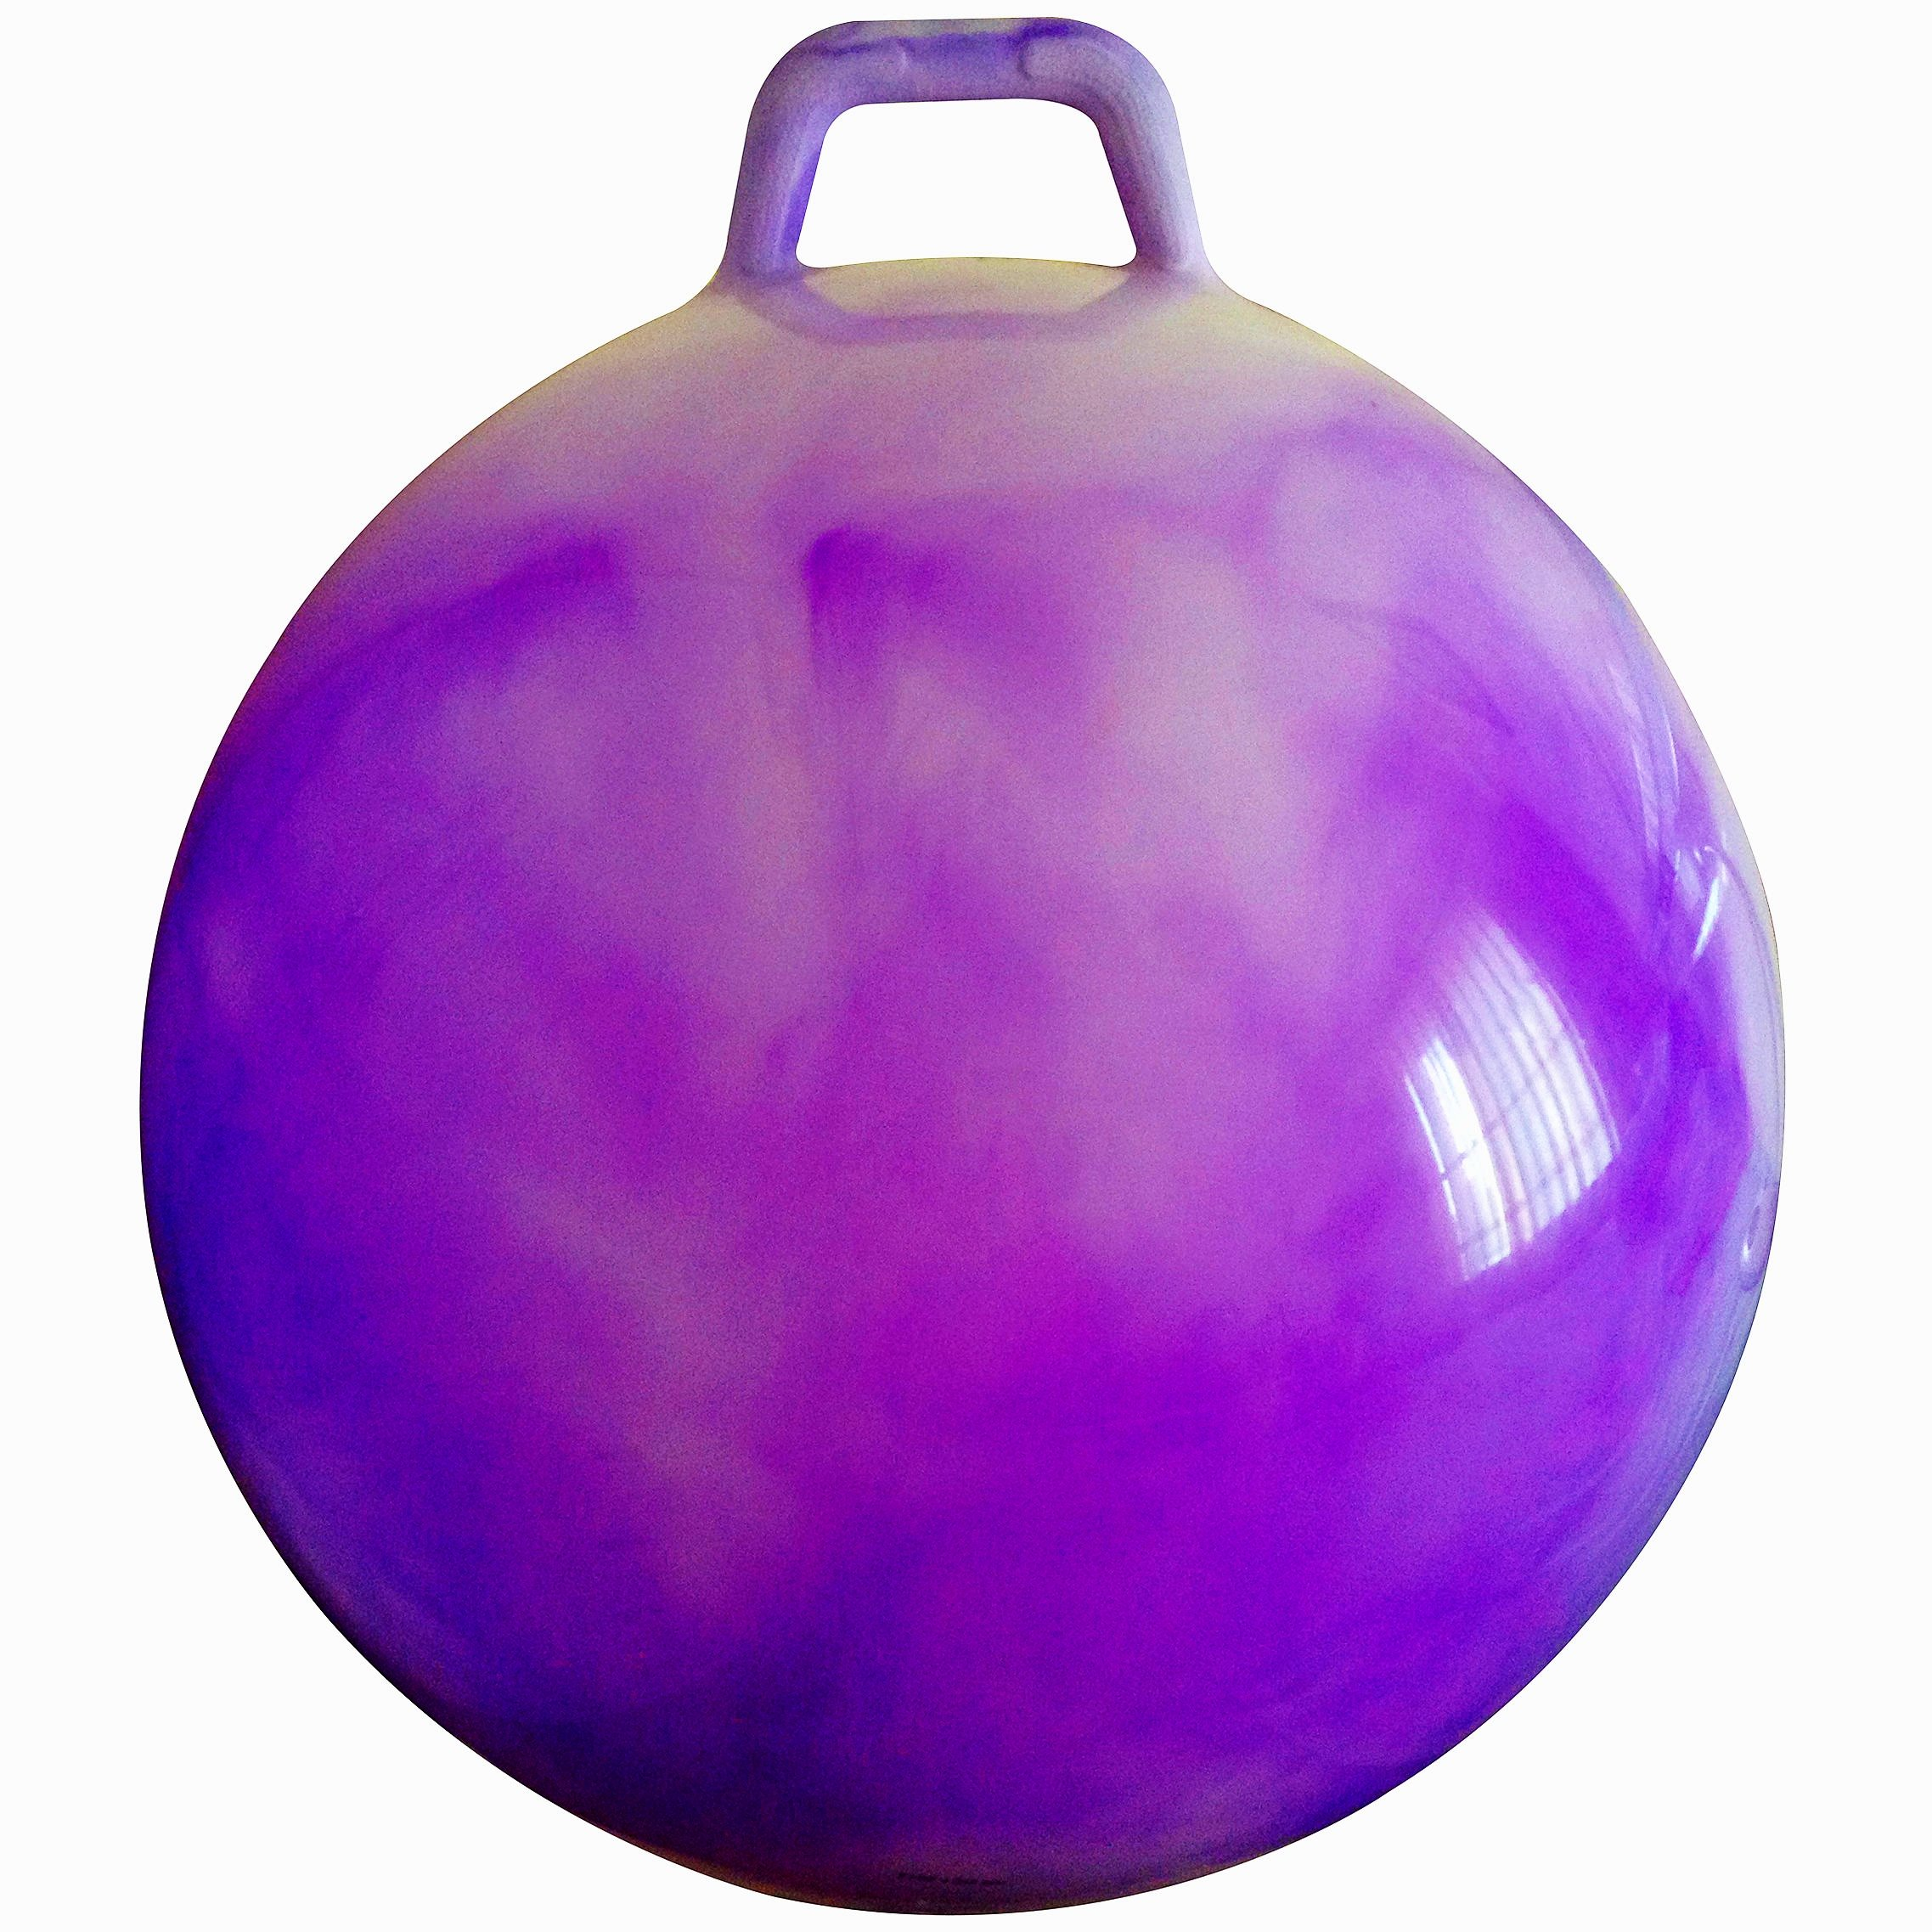 AppleRound Space Hopper Ball with Air Pump: 28in/70cm Diameter for Age 13+, Hop Ball, Kangaroo Bouncer, Hoppity Hop, Jumping Ball, Sit & Bounce by AppleRound